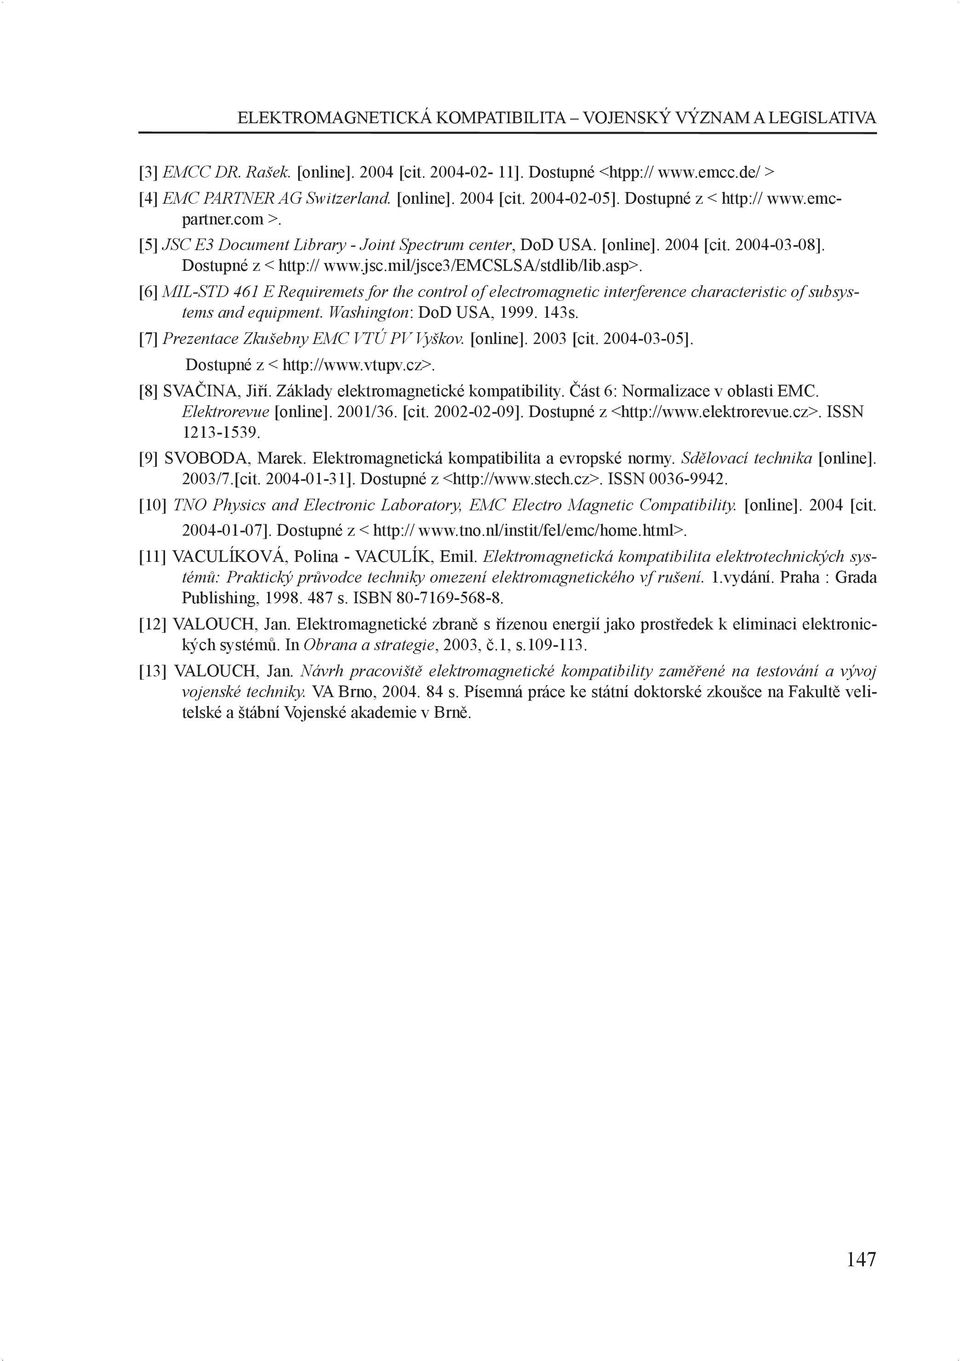 [6] MIL-STD 461 E Requiremets for the control of electromagnetic interference characteristic of subsystems and equipment. Washington: DoD USA, 1999. 143s. [7] Prezentace Zkušebny EMC VTÚ PV Vyškov.